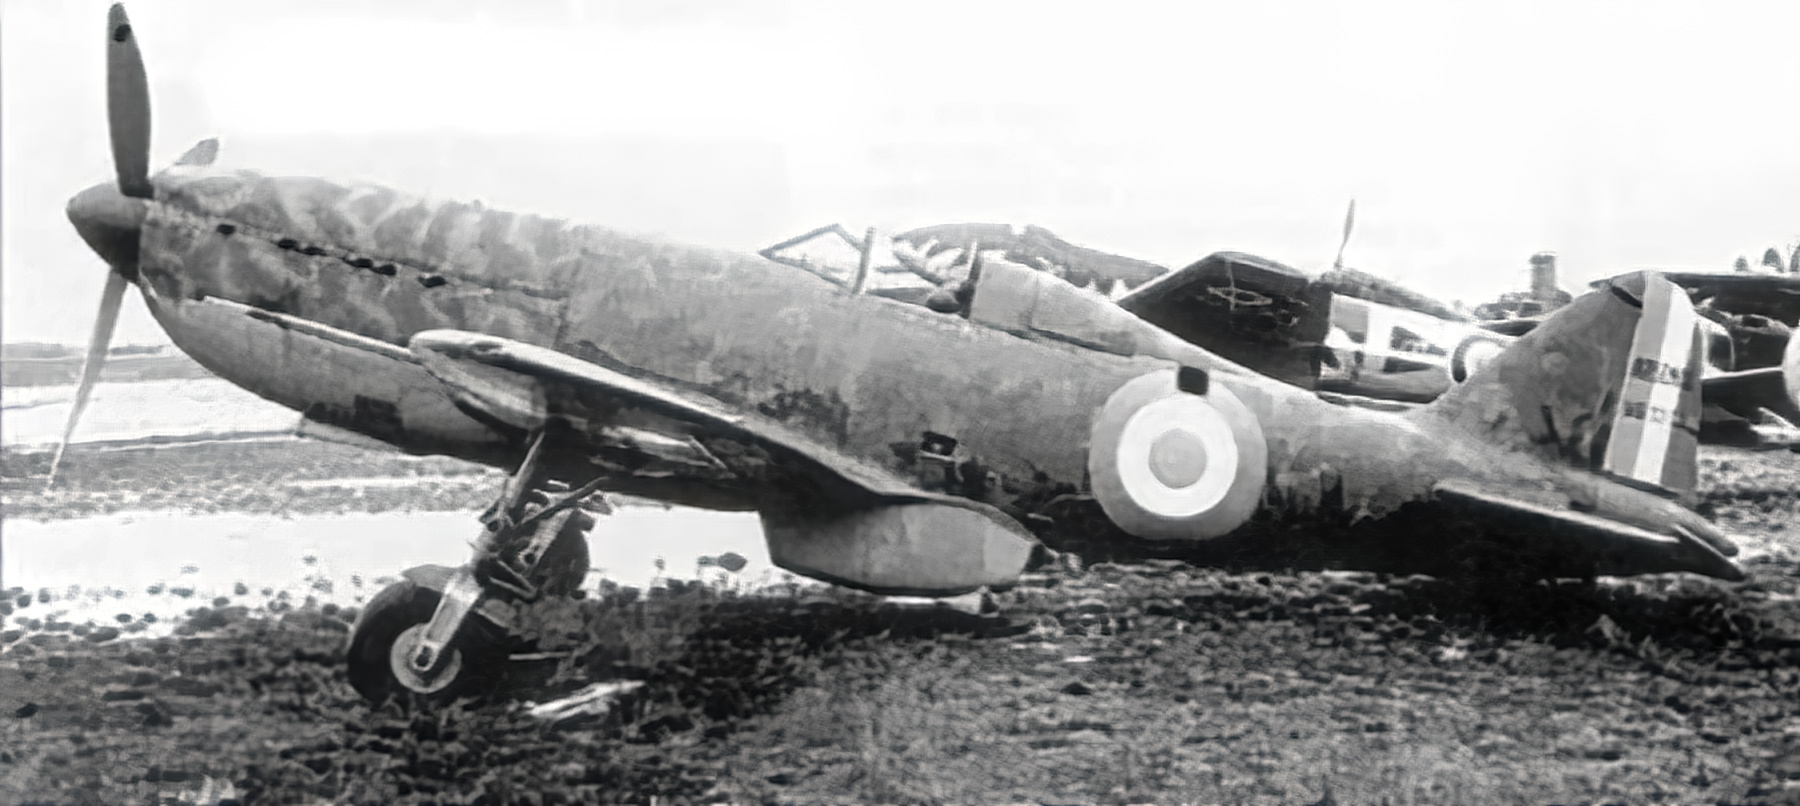 French Airforce Arsenal VG 33 sits abandoned after the fall of France June 1940 ebay 03